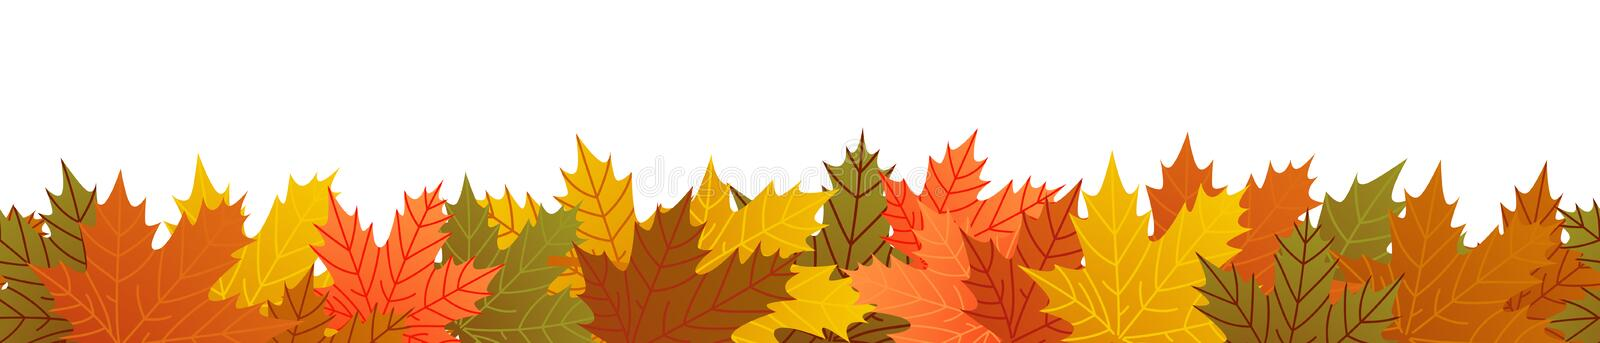 Autumn leaves, seamless banner, repeating pattern, colorful foliage, maple royalty free illustration